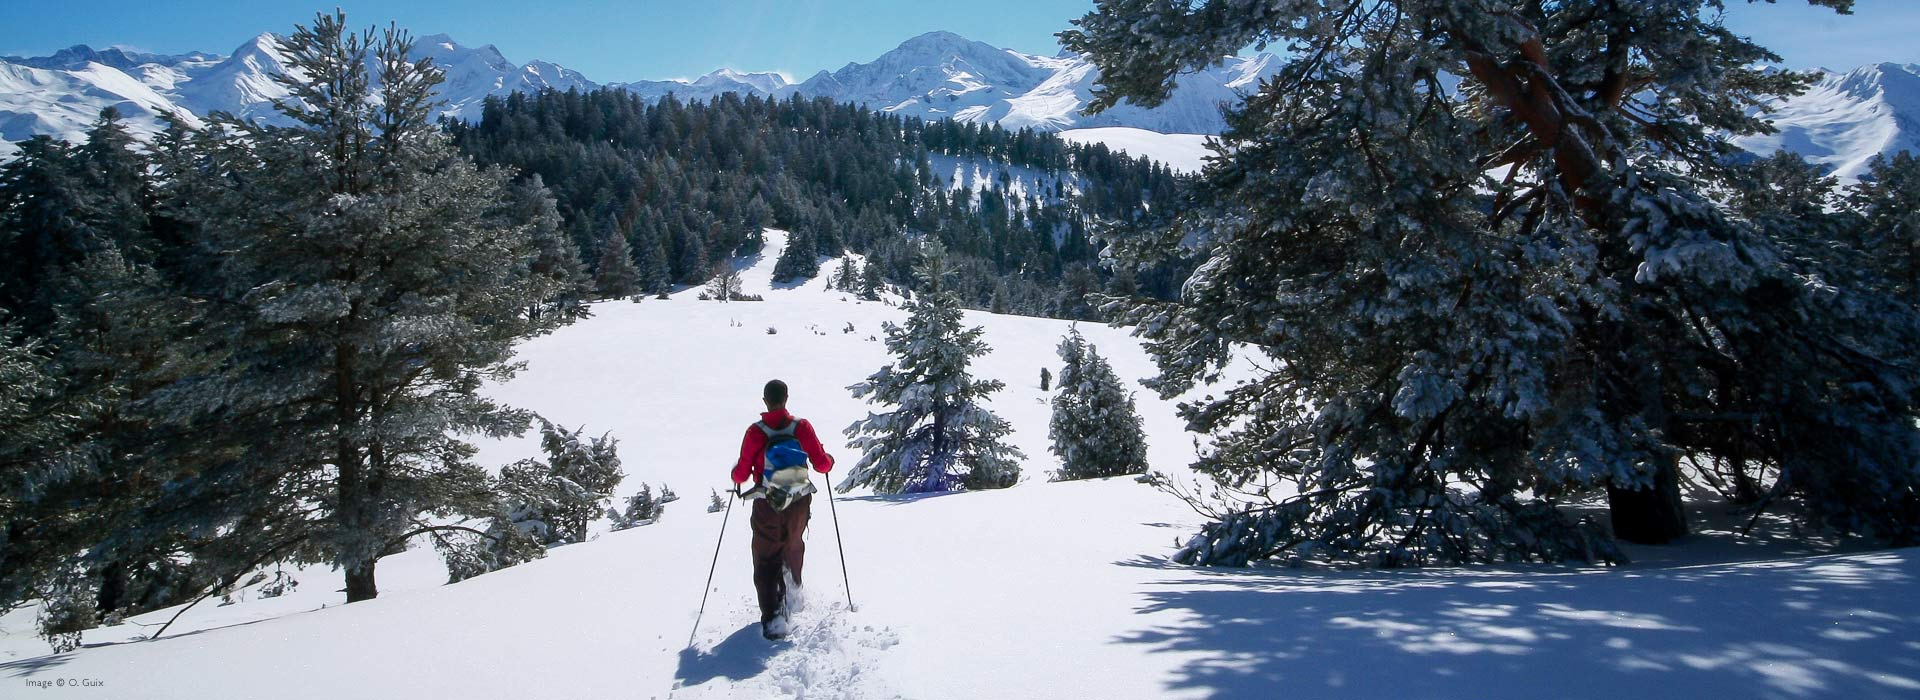 Snowshoe in the French Pyrenees Image ©O. Guix